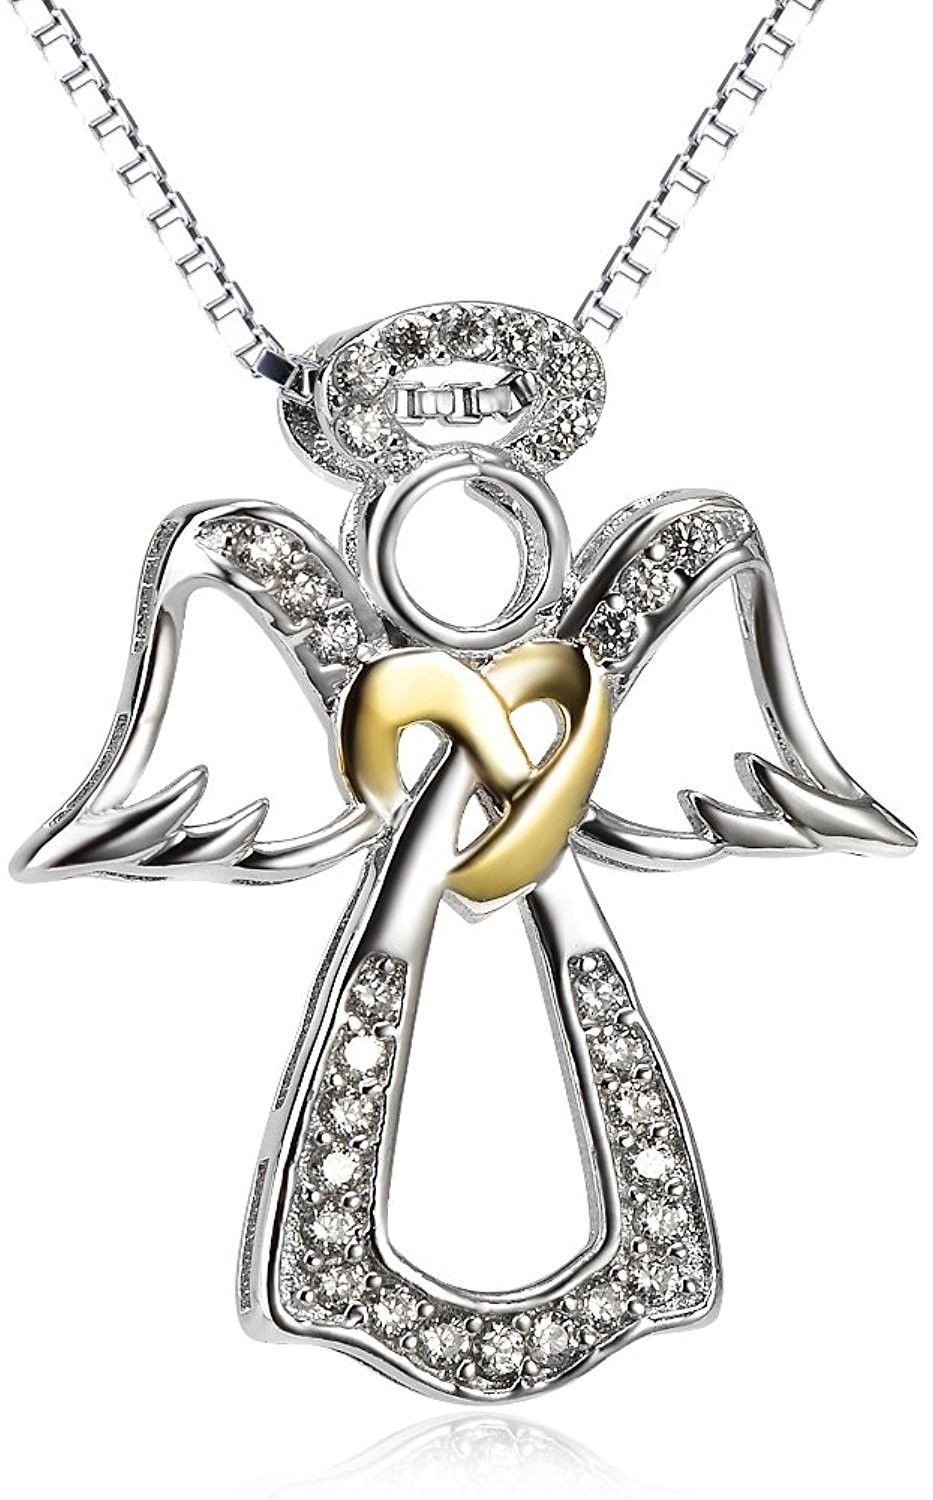 Primary image for S925 Sterling Silver Two-Tone Angel Wings Pendant Necklace For Women 18 Inches